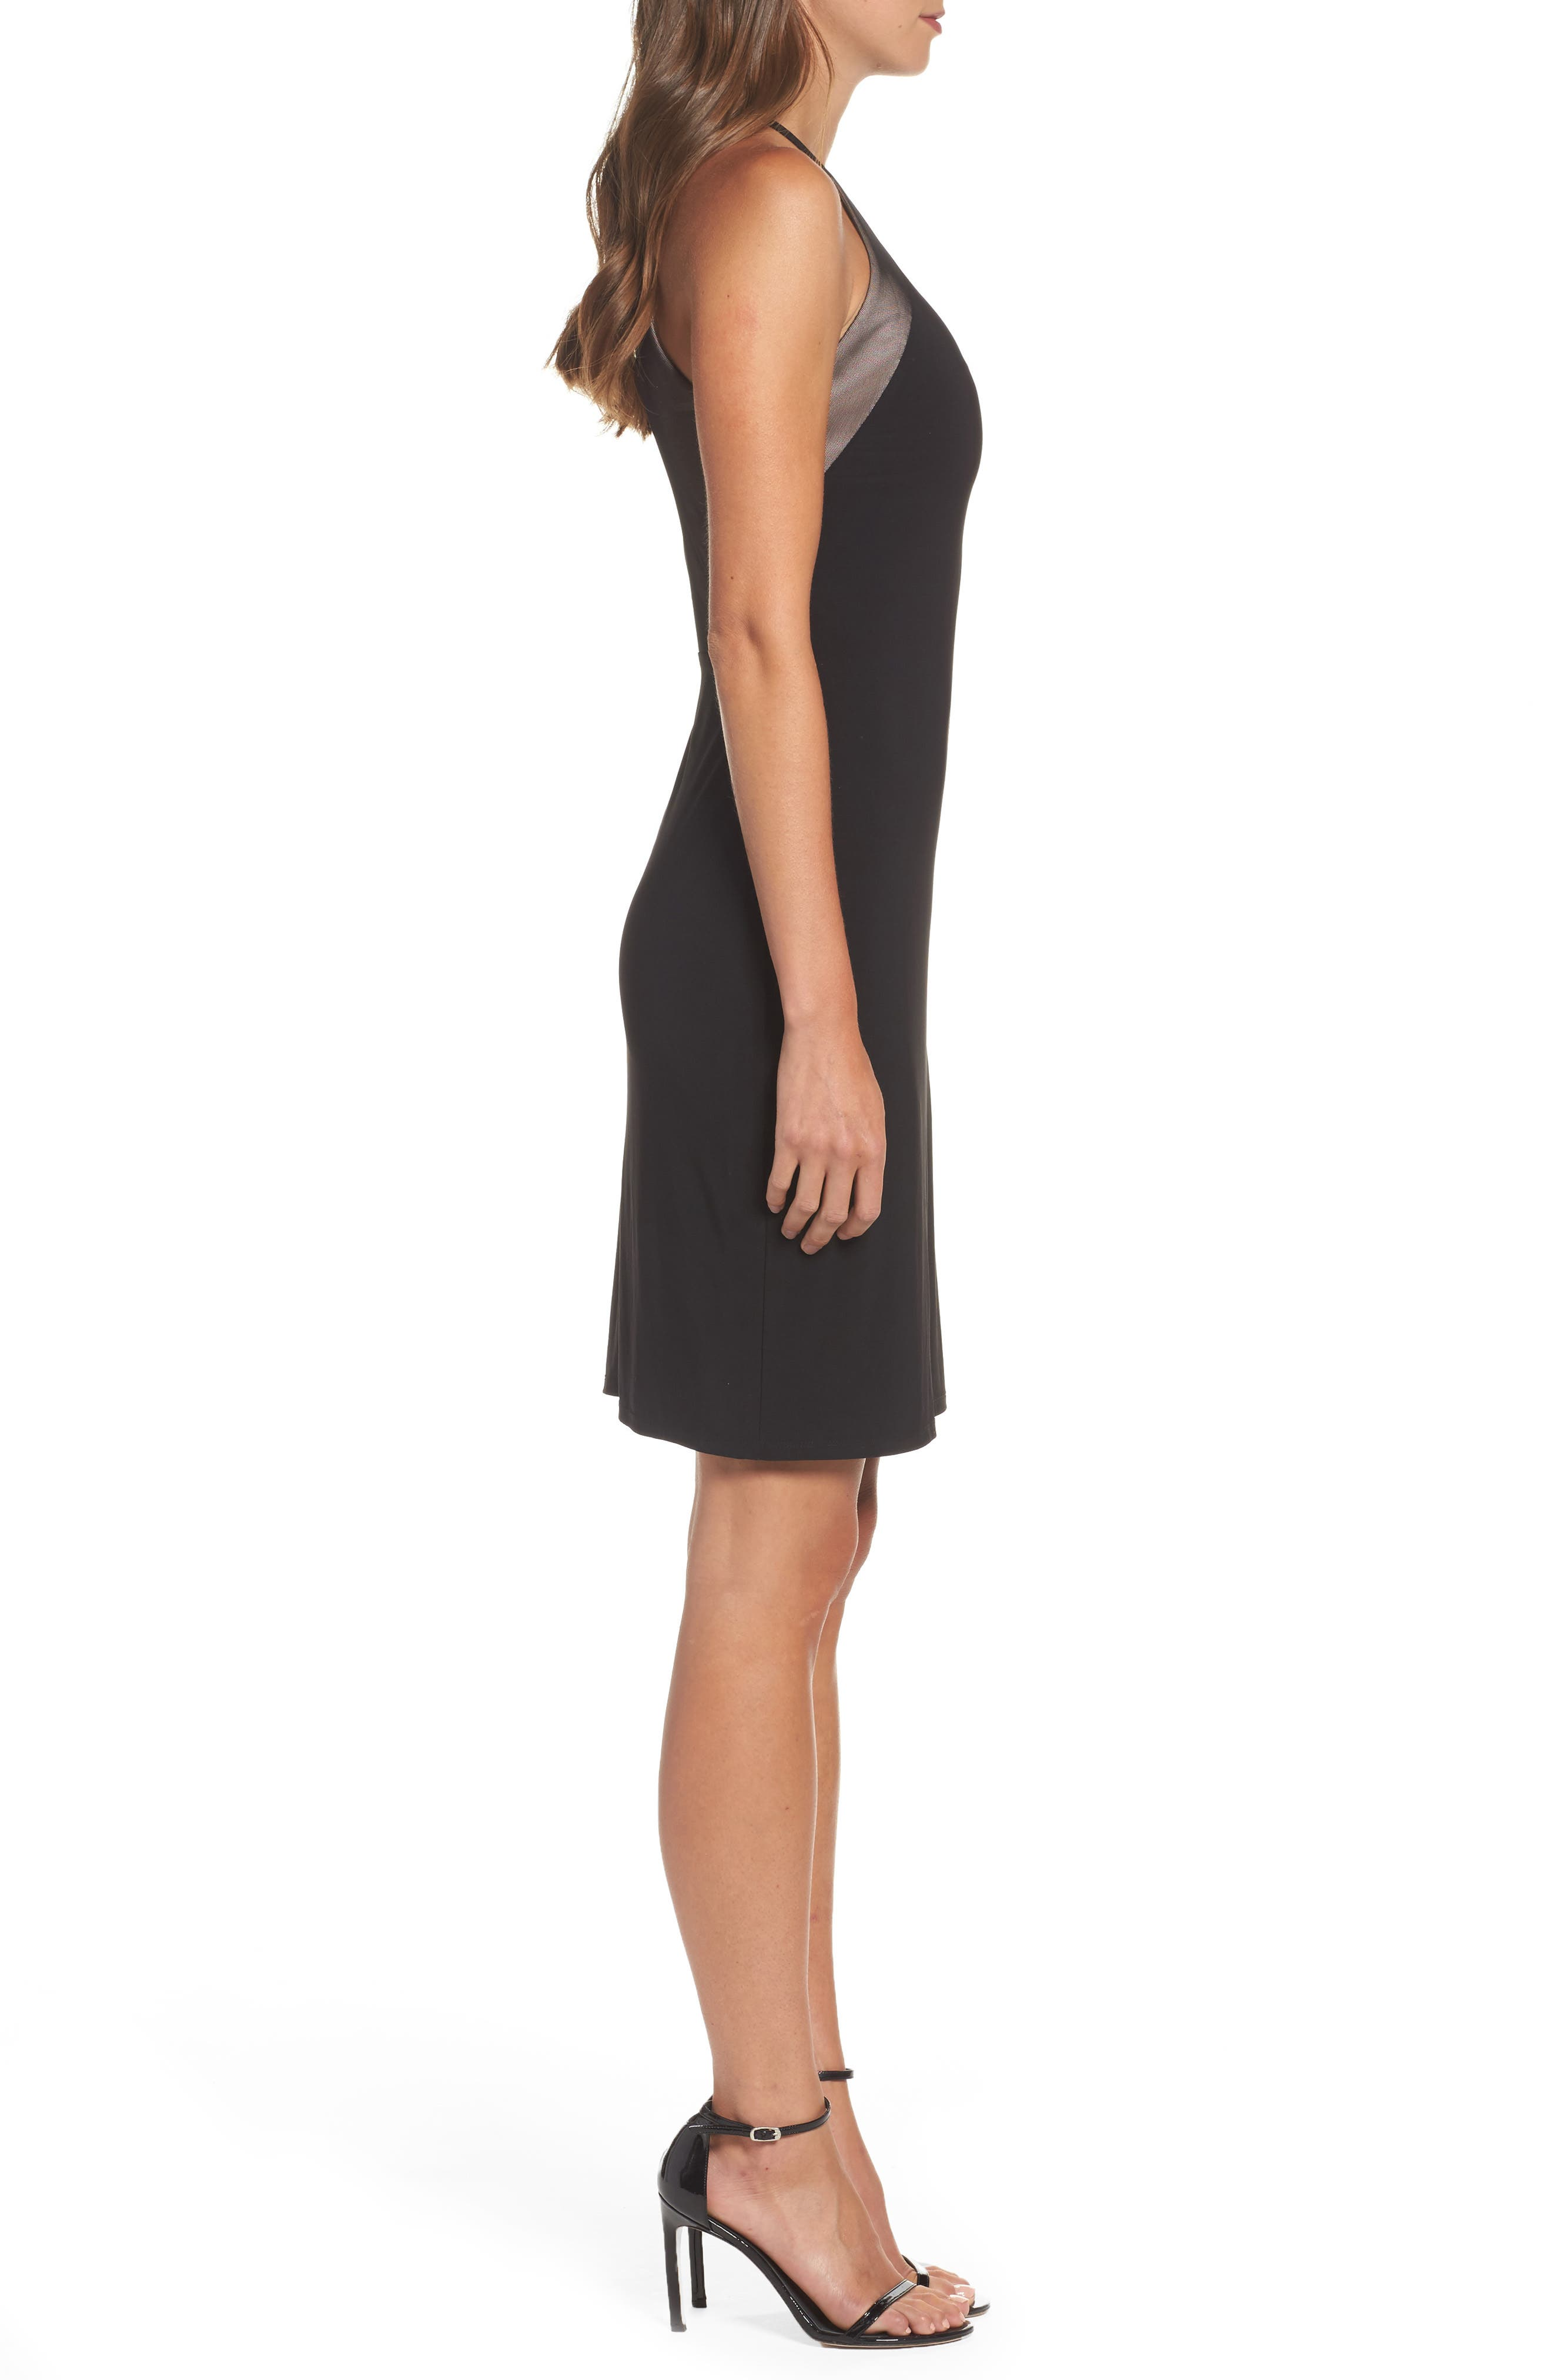 Willus Sheath Dress,                             Alternate thumbnail 3, color,                             Black/ Nude